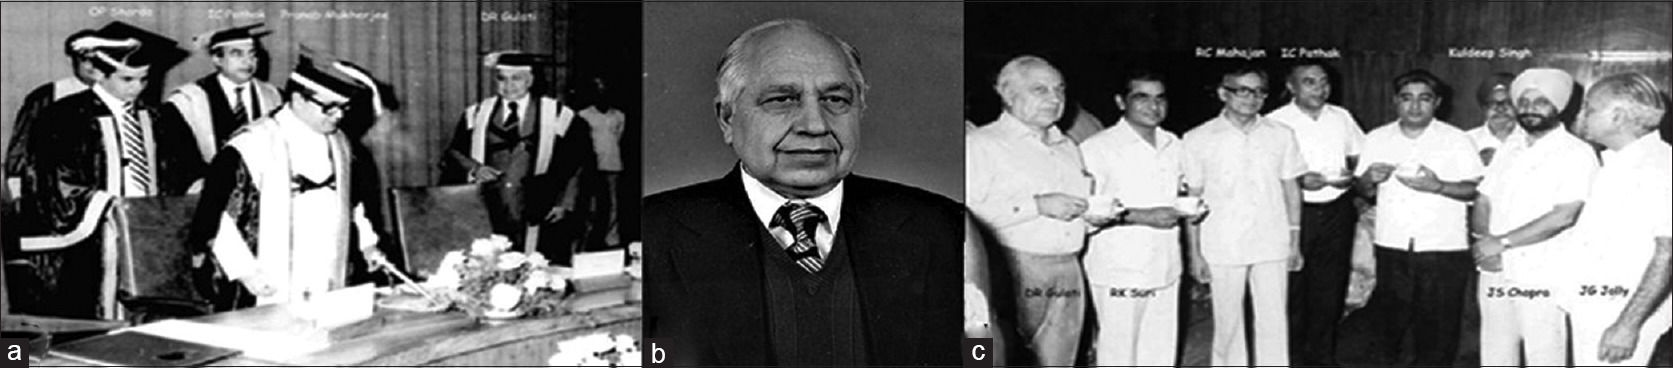 Figure 6: Dr. Des Raj Gulati (founder father of neurosciences at PGIMER, Chandigarh). (a) Prof Gulati with his Excellency Mr. Pranab Mukherjee, Dr IC Pathak and Dr OP Sharda; (b) File photo of Dr. DR Gulati; (c) Dr. Gulati with the faculty of Department of Neurosciences along with Dr. JS Chopra (founder father of the Department of Neurology at PGIMER, Chandigarh)